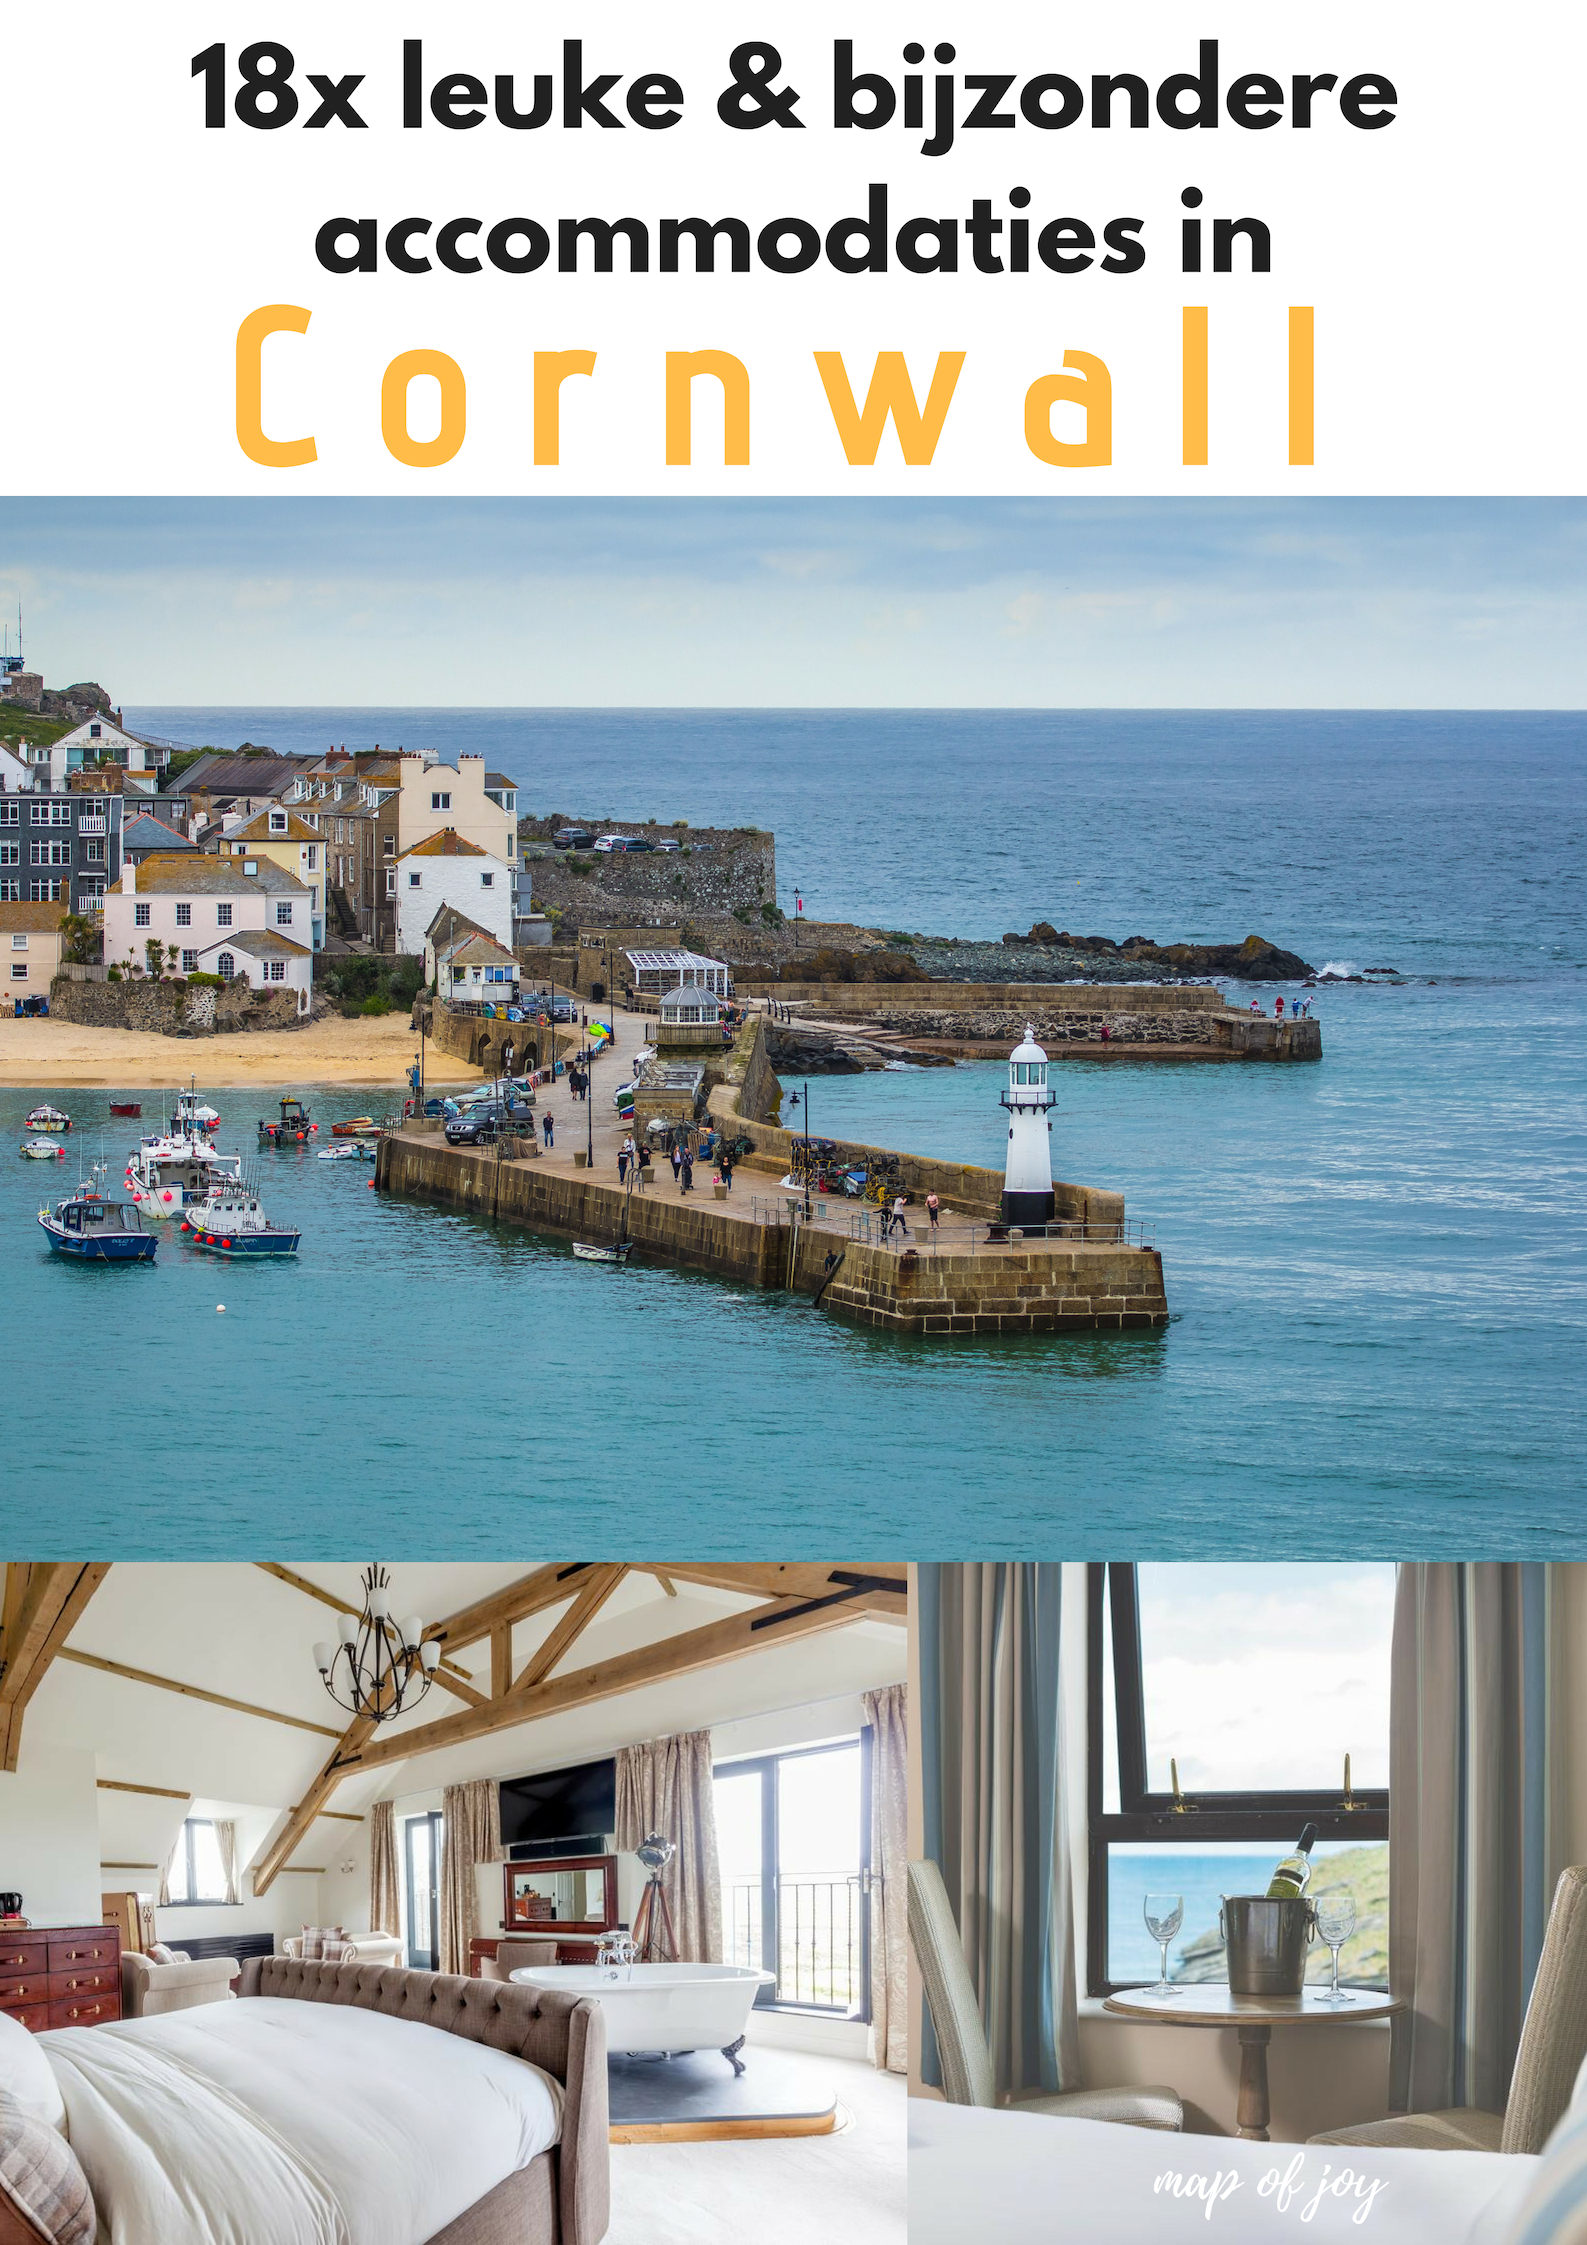 18x leuke, bijzondere accommodaties in Cornwall - Map of Joy